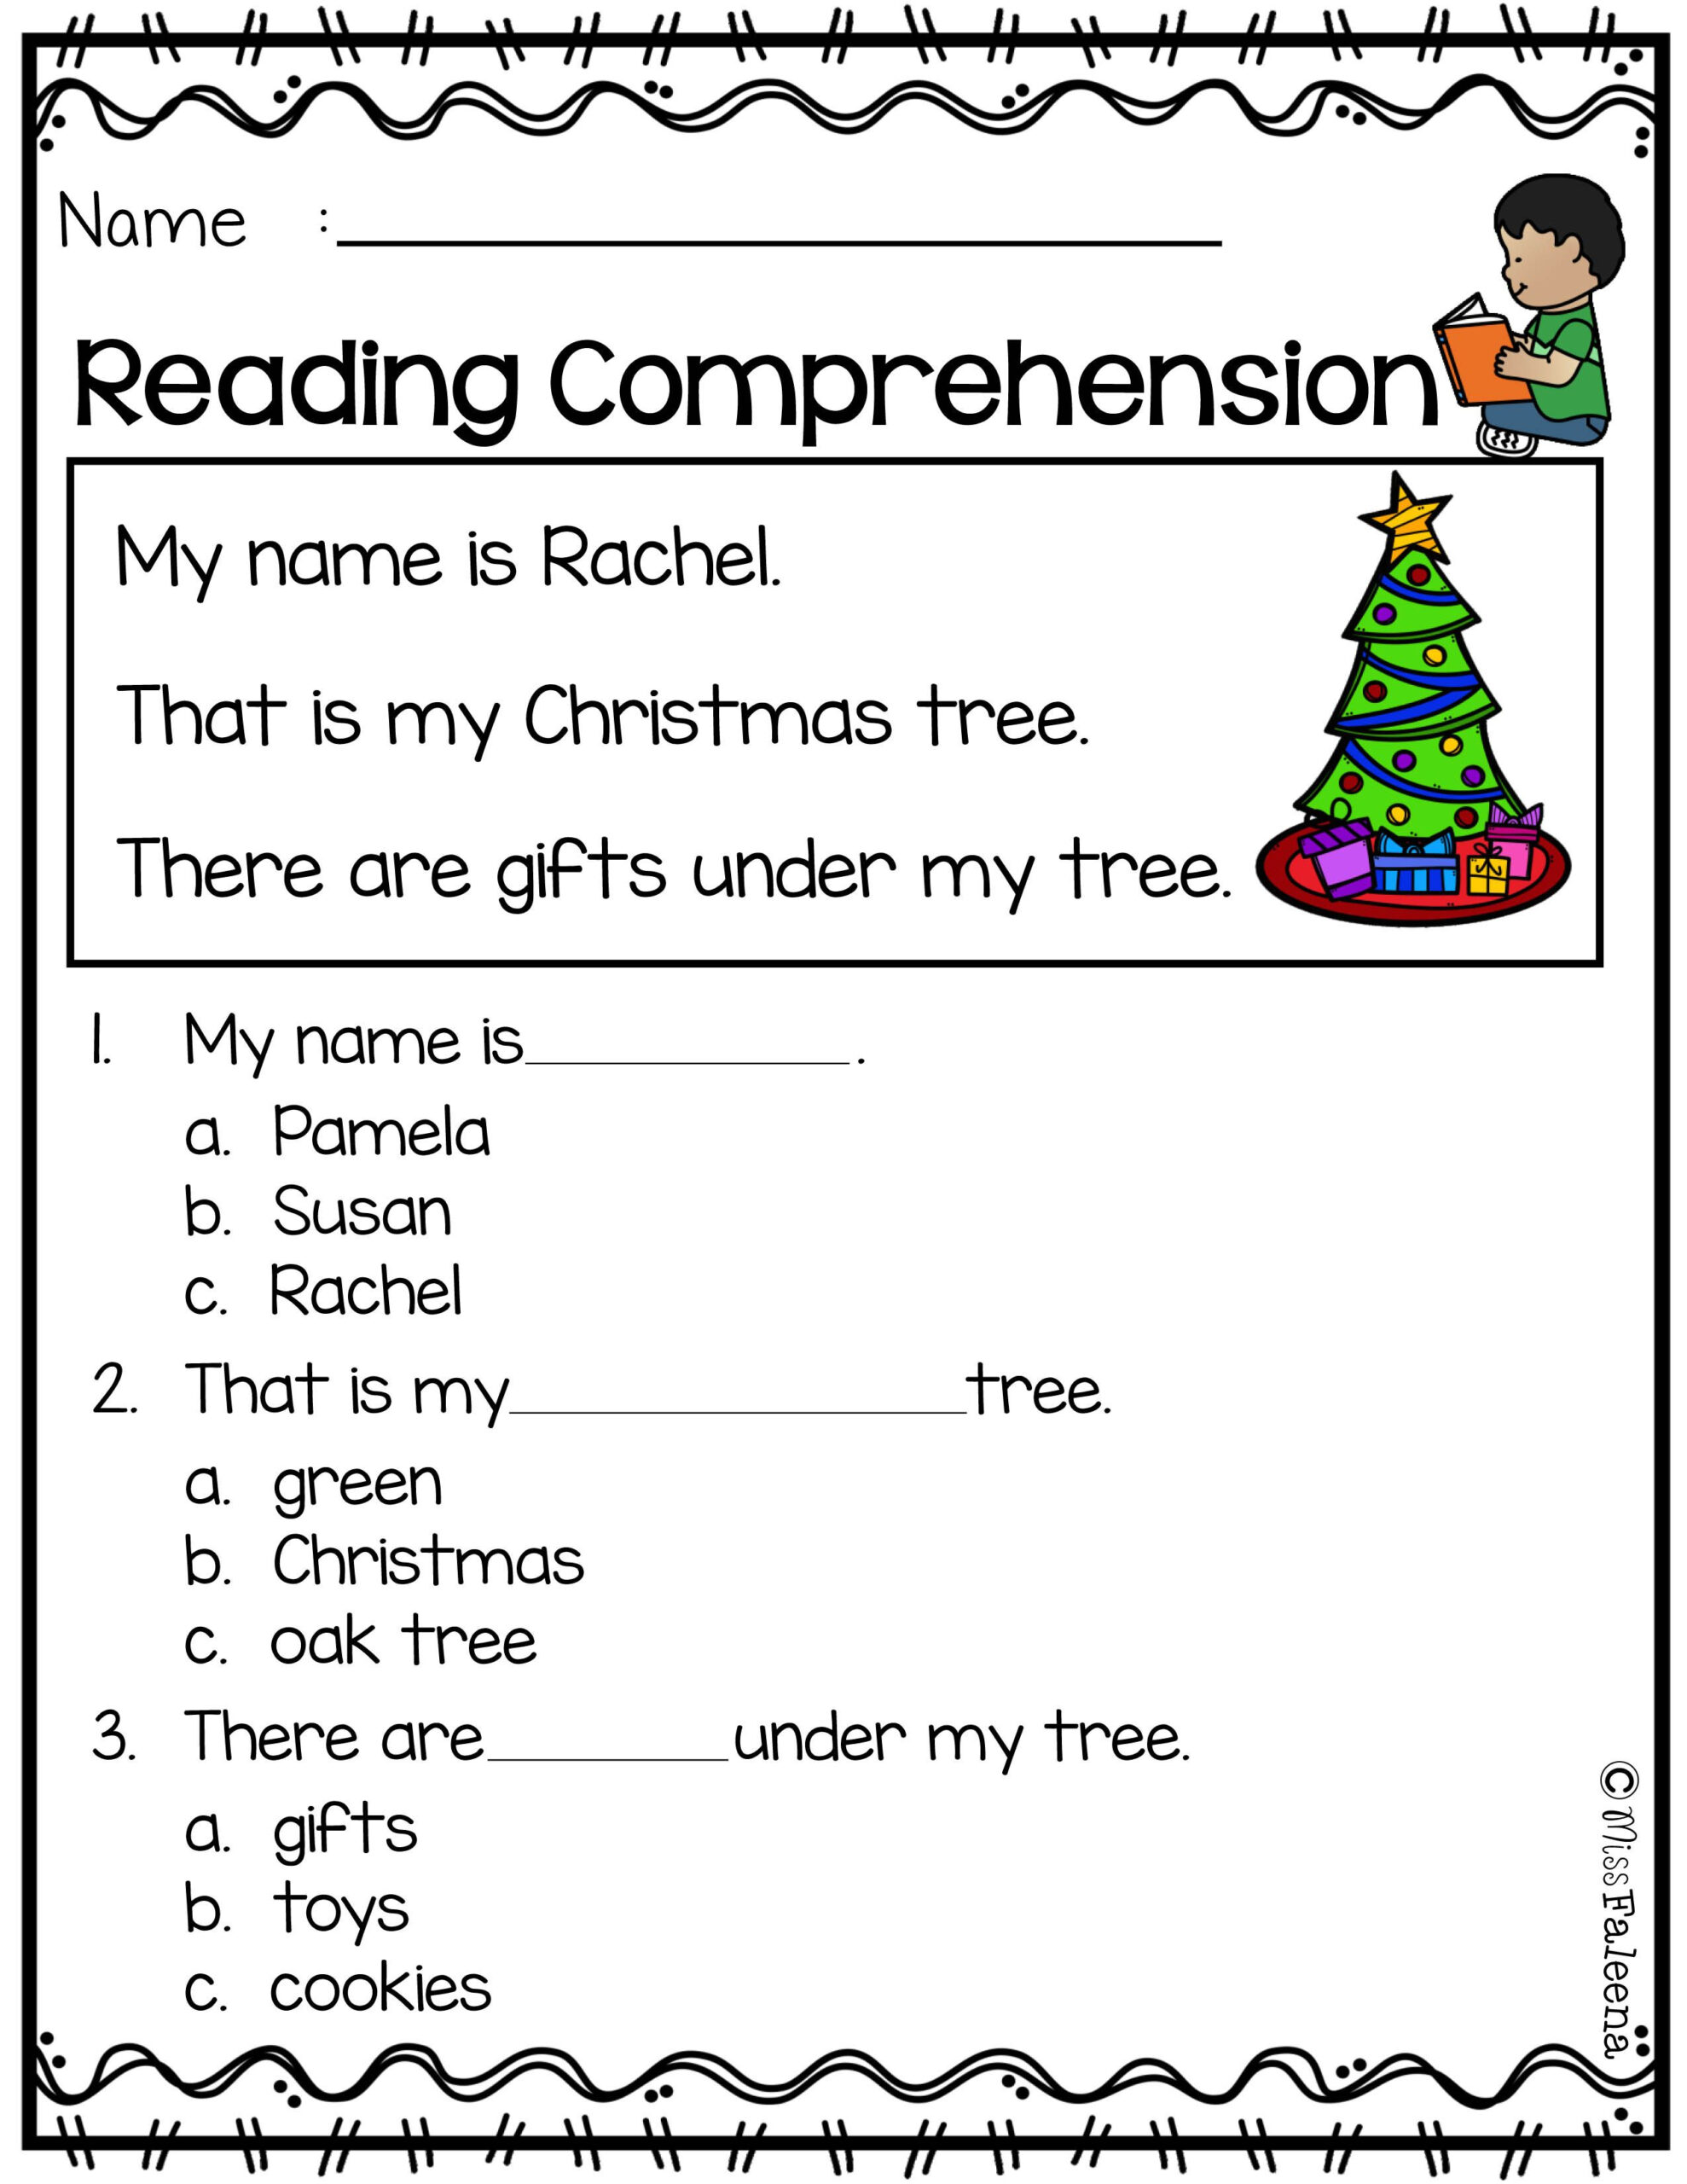 Free 5th Grade Christmas Reading Comprehension Worksheets